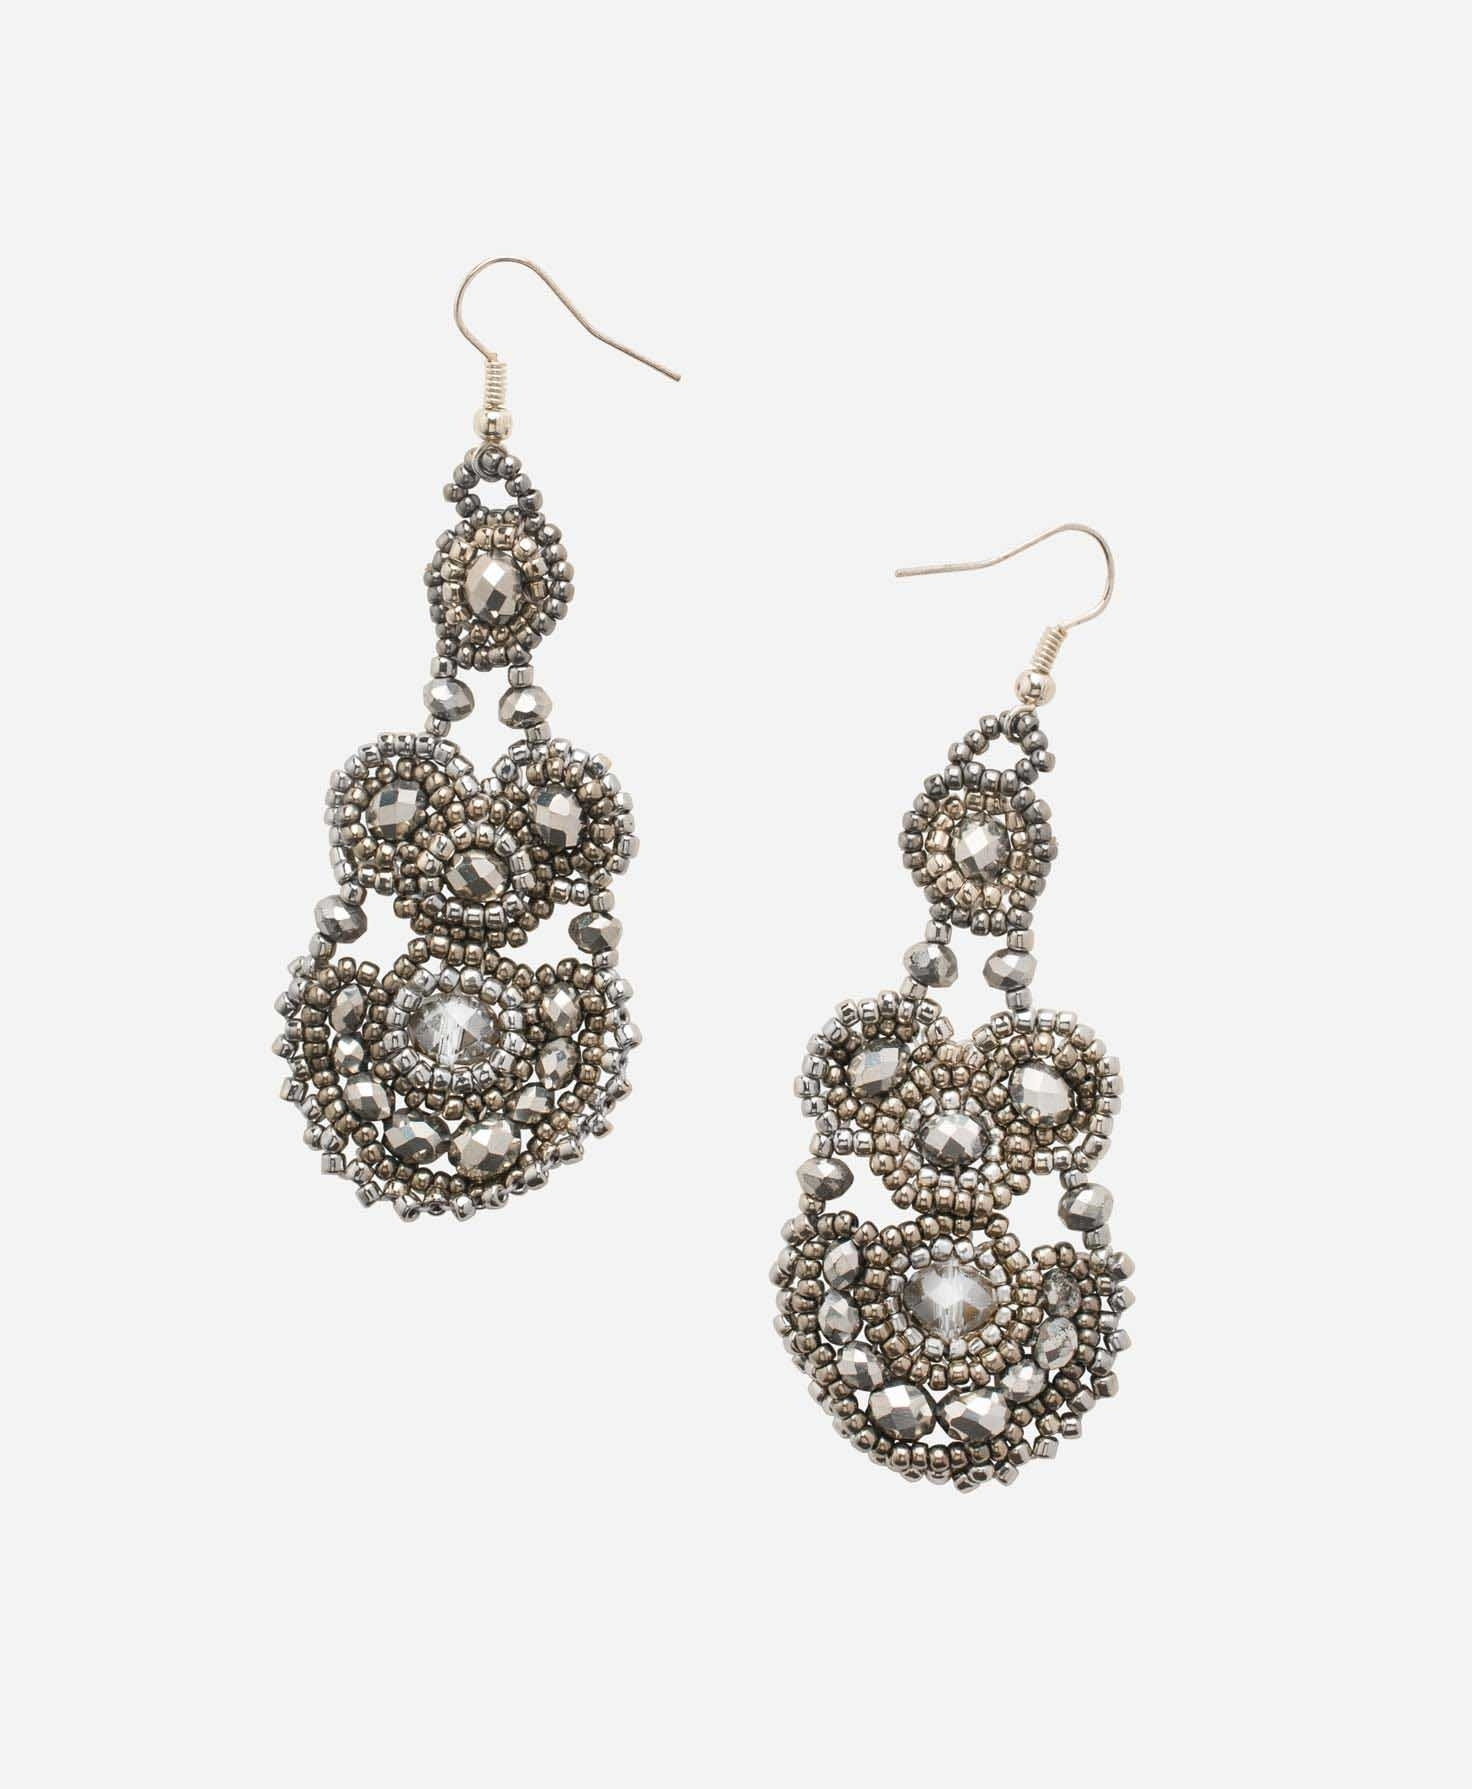 Most Recent Shop Noonday Collection Jewelry & Accessories Inside Chandelier Accessories (View 14 of 20)